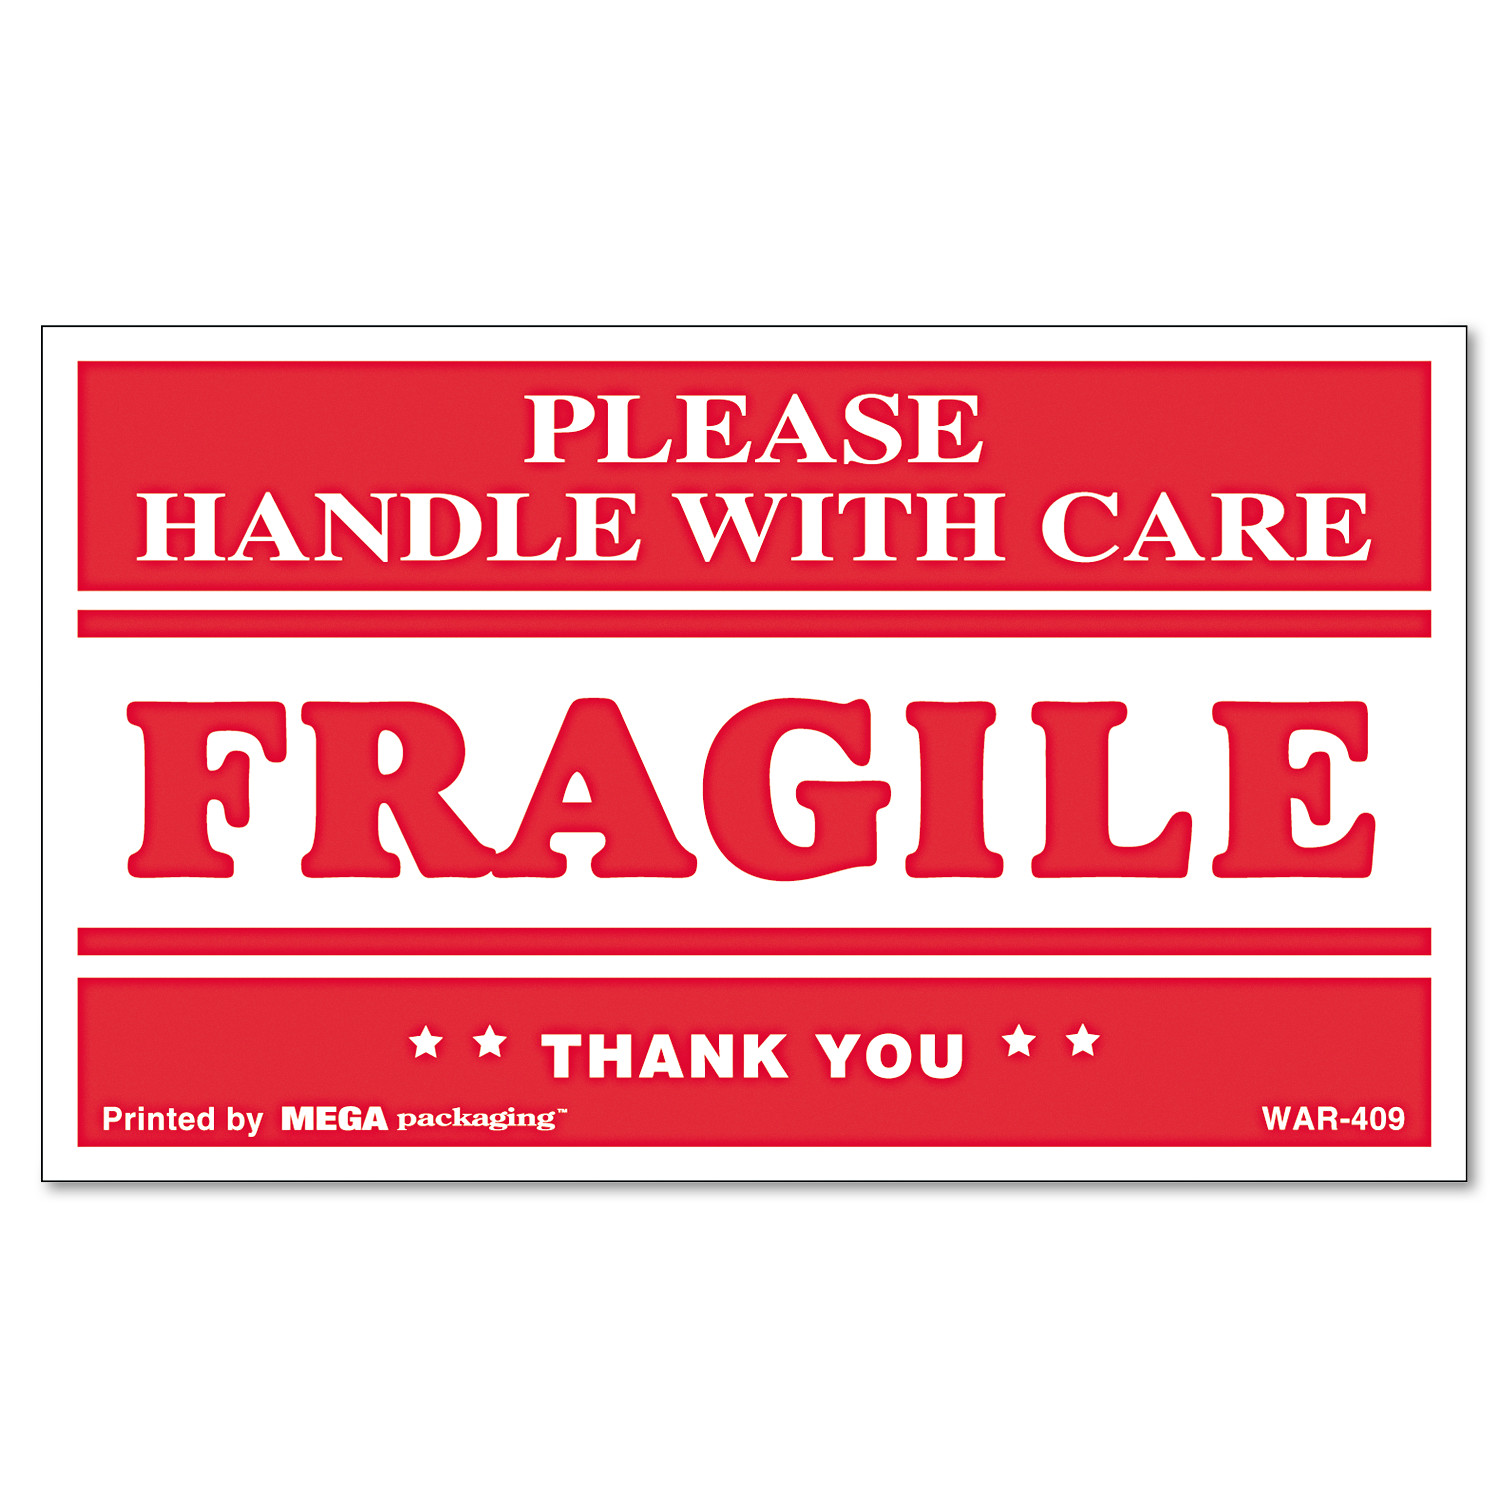 Universal FRAGILE HANDLE WITH CARE Self-Adhesive Shipping Labels, 3 x 5, 500/Roll -UNV308383